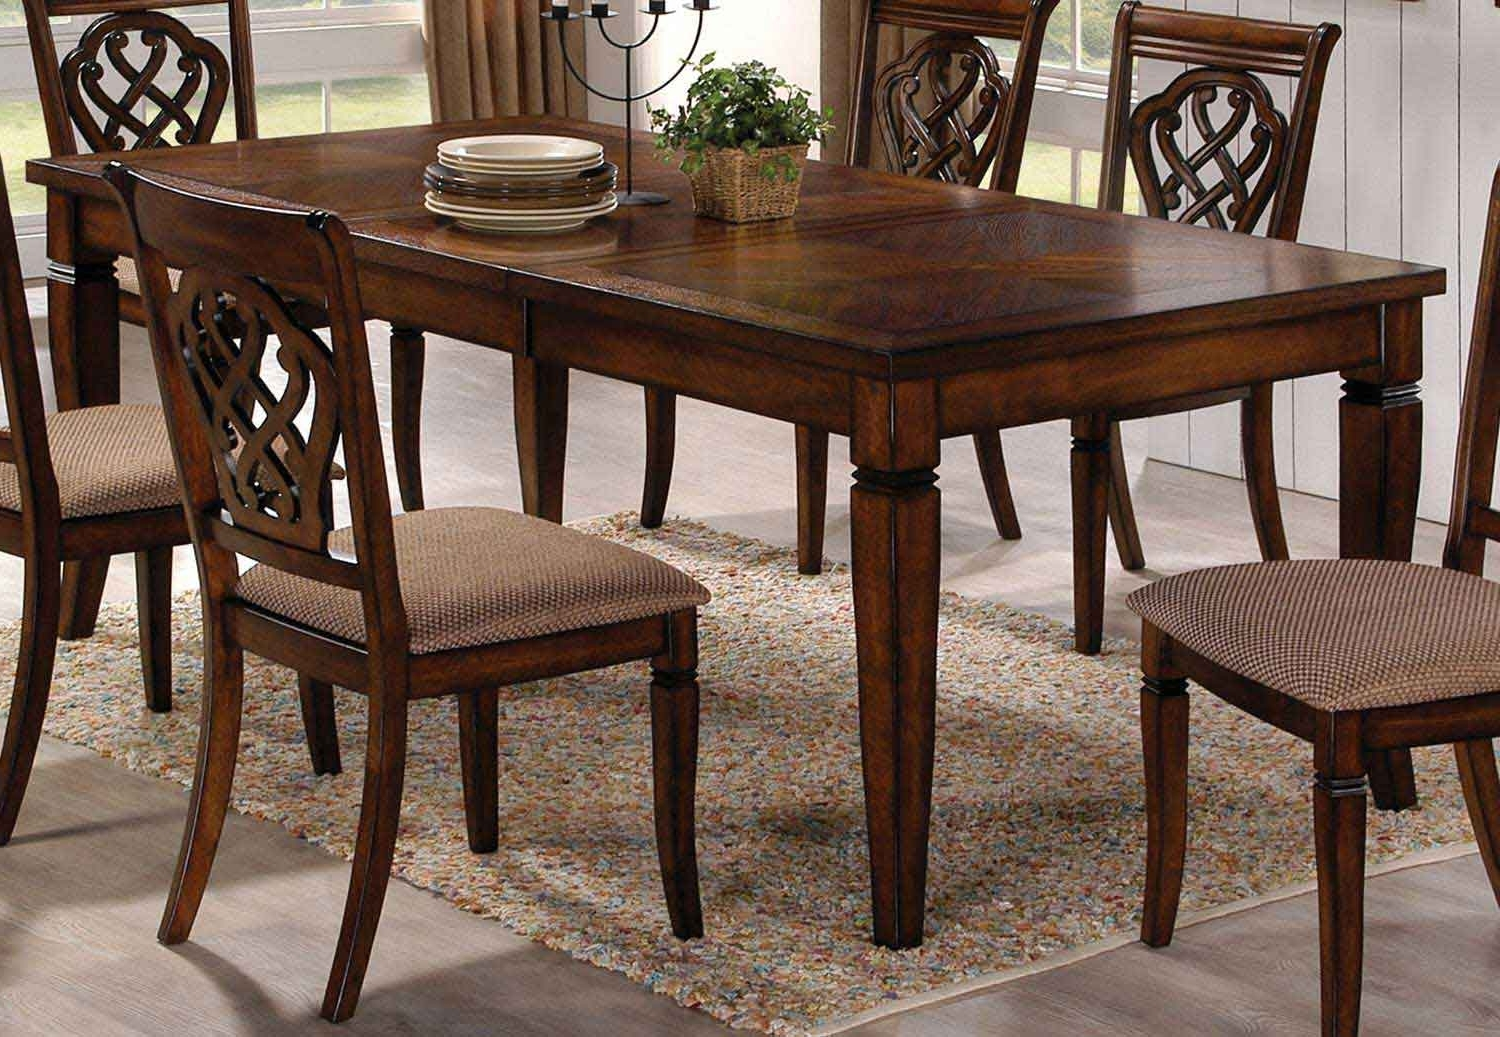 Hayden Dining Tables Pertaining To Trendy Coaster Hayden Dining Table – Oak 103391 At Homelement (View 7 of 25)